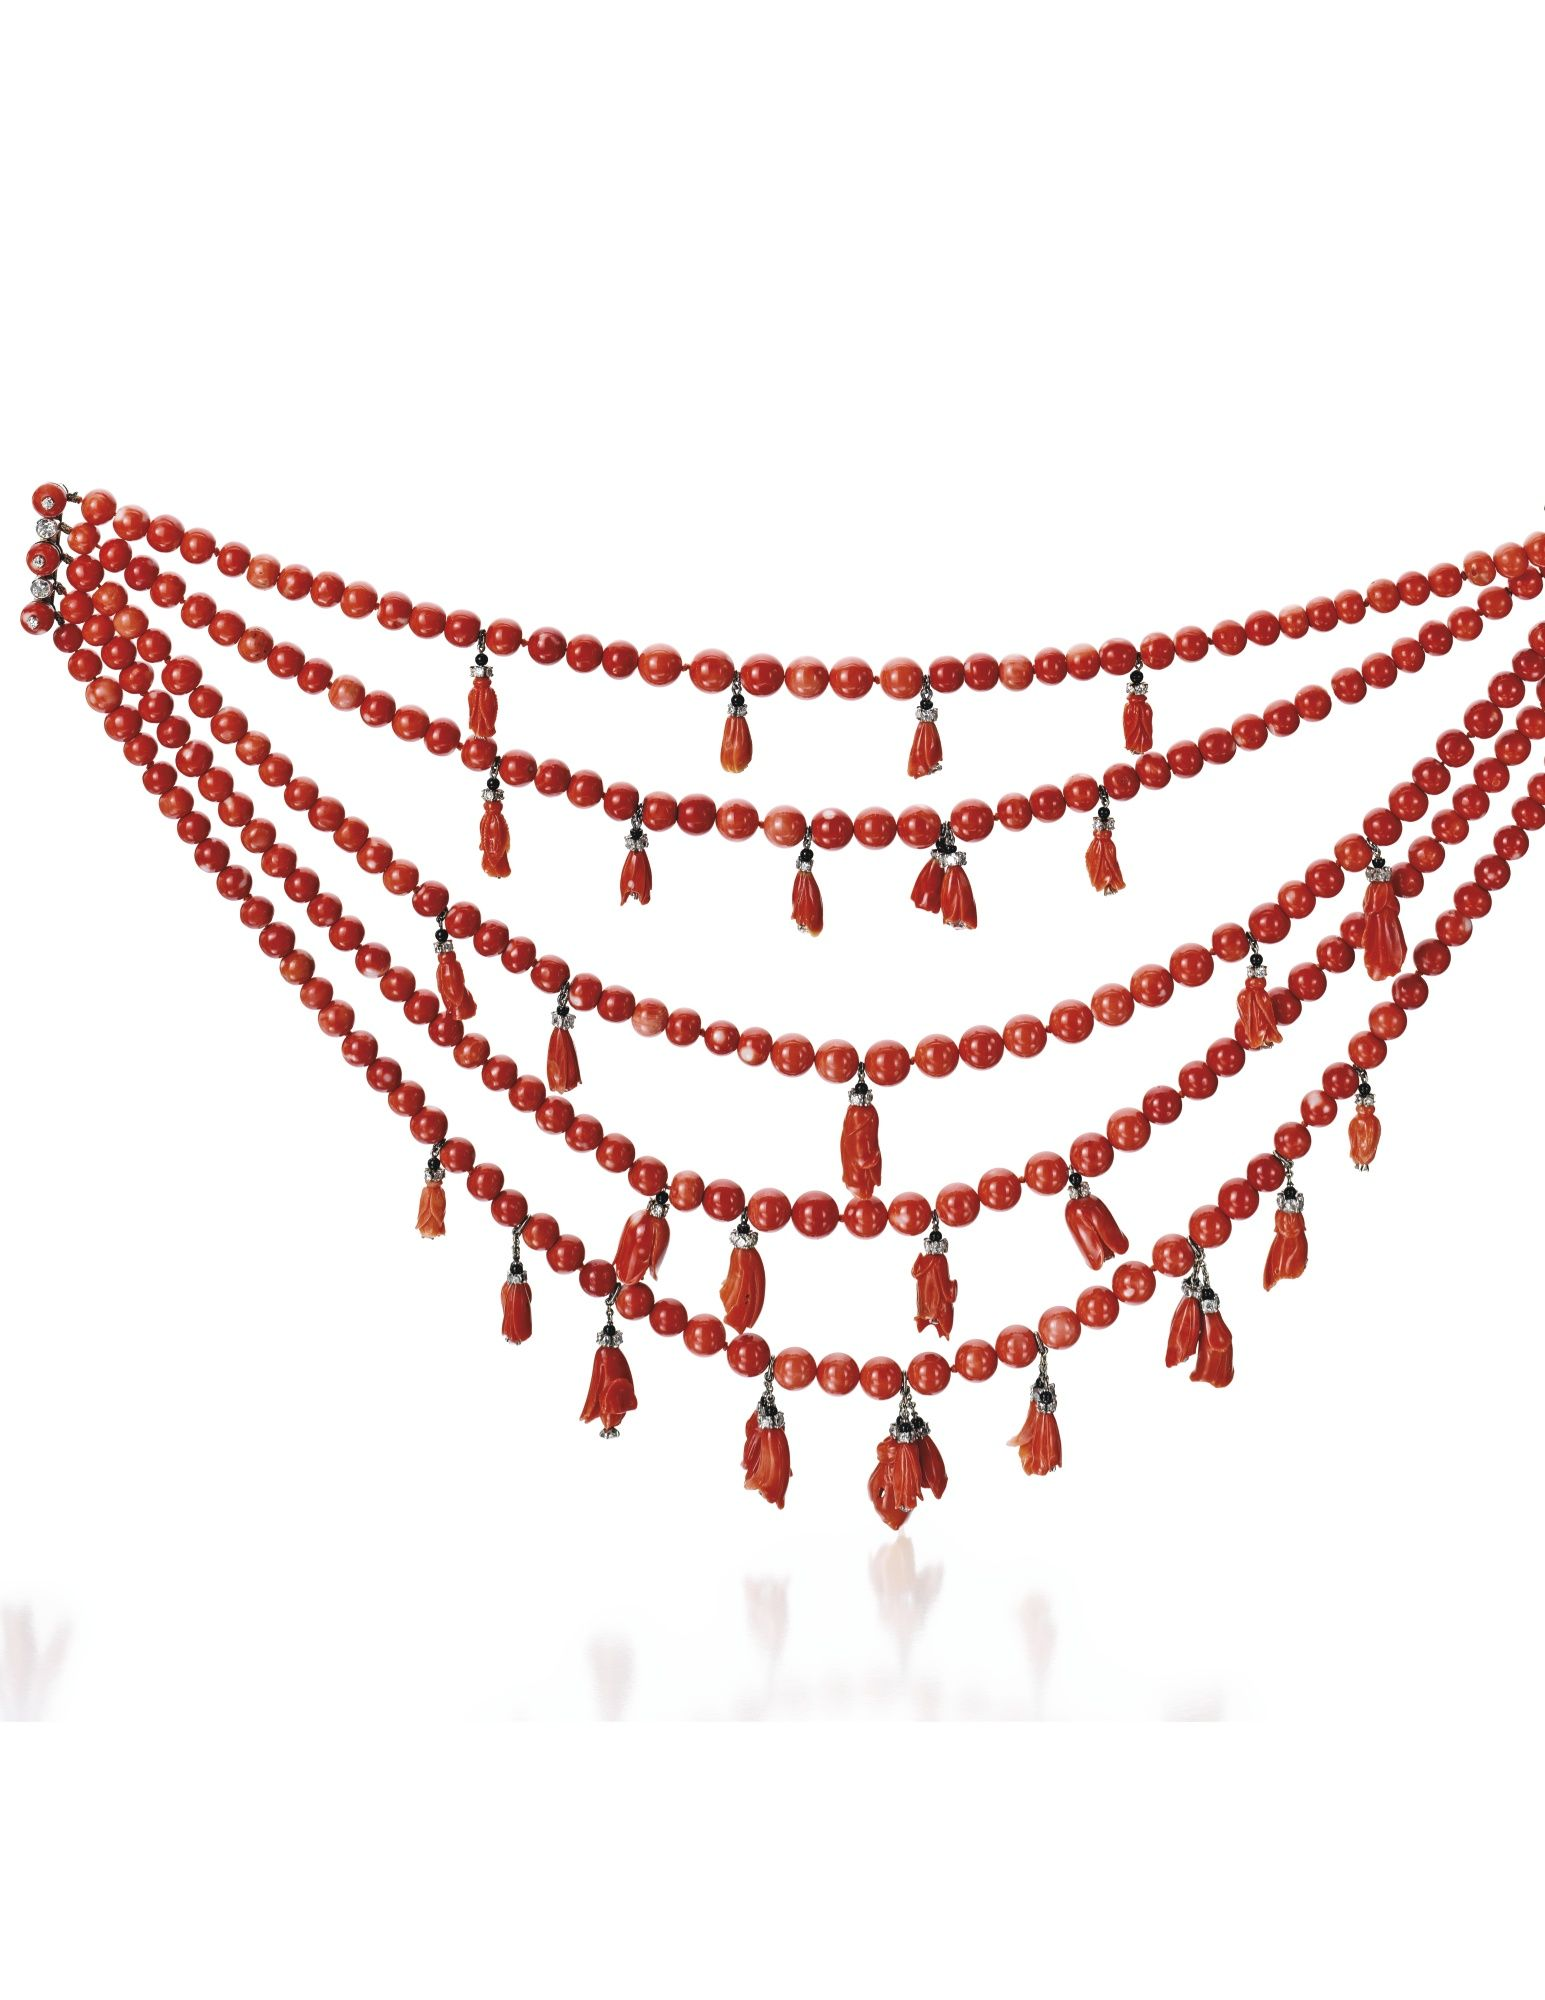 Sotheby´s - Platinum, 18 Karat White Gold, Coral, Onyx and Diamond 'Wilting Hibiscus' Necklace, Designed by Suzanne Belperron, 1932-1940; Estimate: 50,000 - 75,000 USD; LOT SOLD. 278,500 USD; The five-strand necklace composed of 258 coral beads measuring approximately 11.4 to 7.8 mm, suspending 35 carved coral hibiscus blossoms, the interior of each flowerhead set with a diamond and suspended by diamond-set rondelles and onyx beads, set throughout with 16.25 carats of diamonds, length 14…